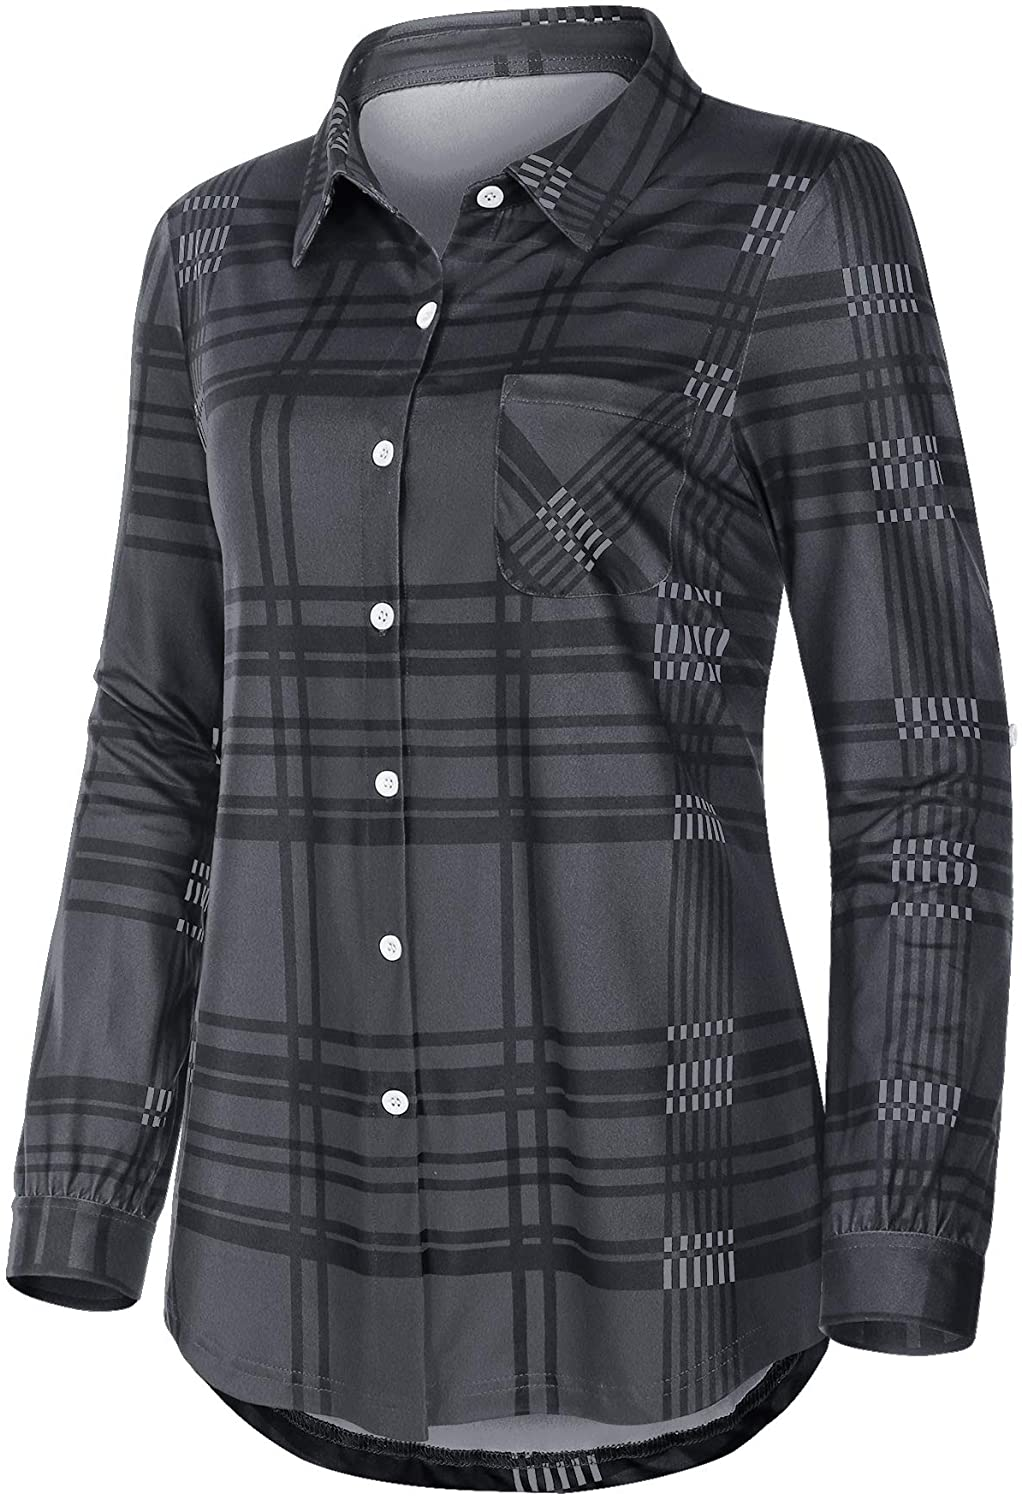 Miusey Women's Roll Up Long Sleeve Collared Button Down Plaid Shirt with Pocket